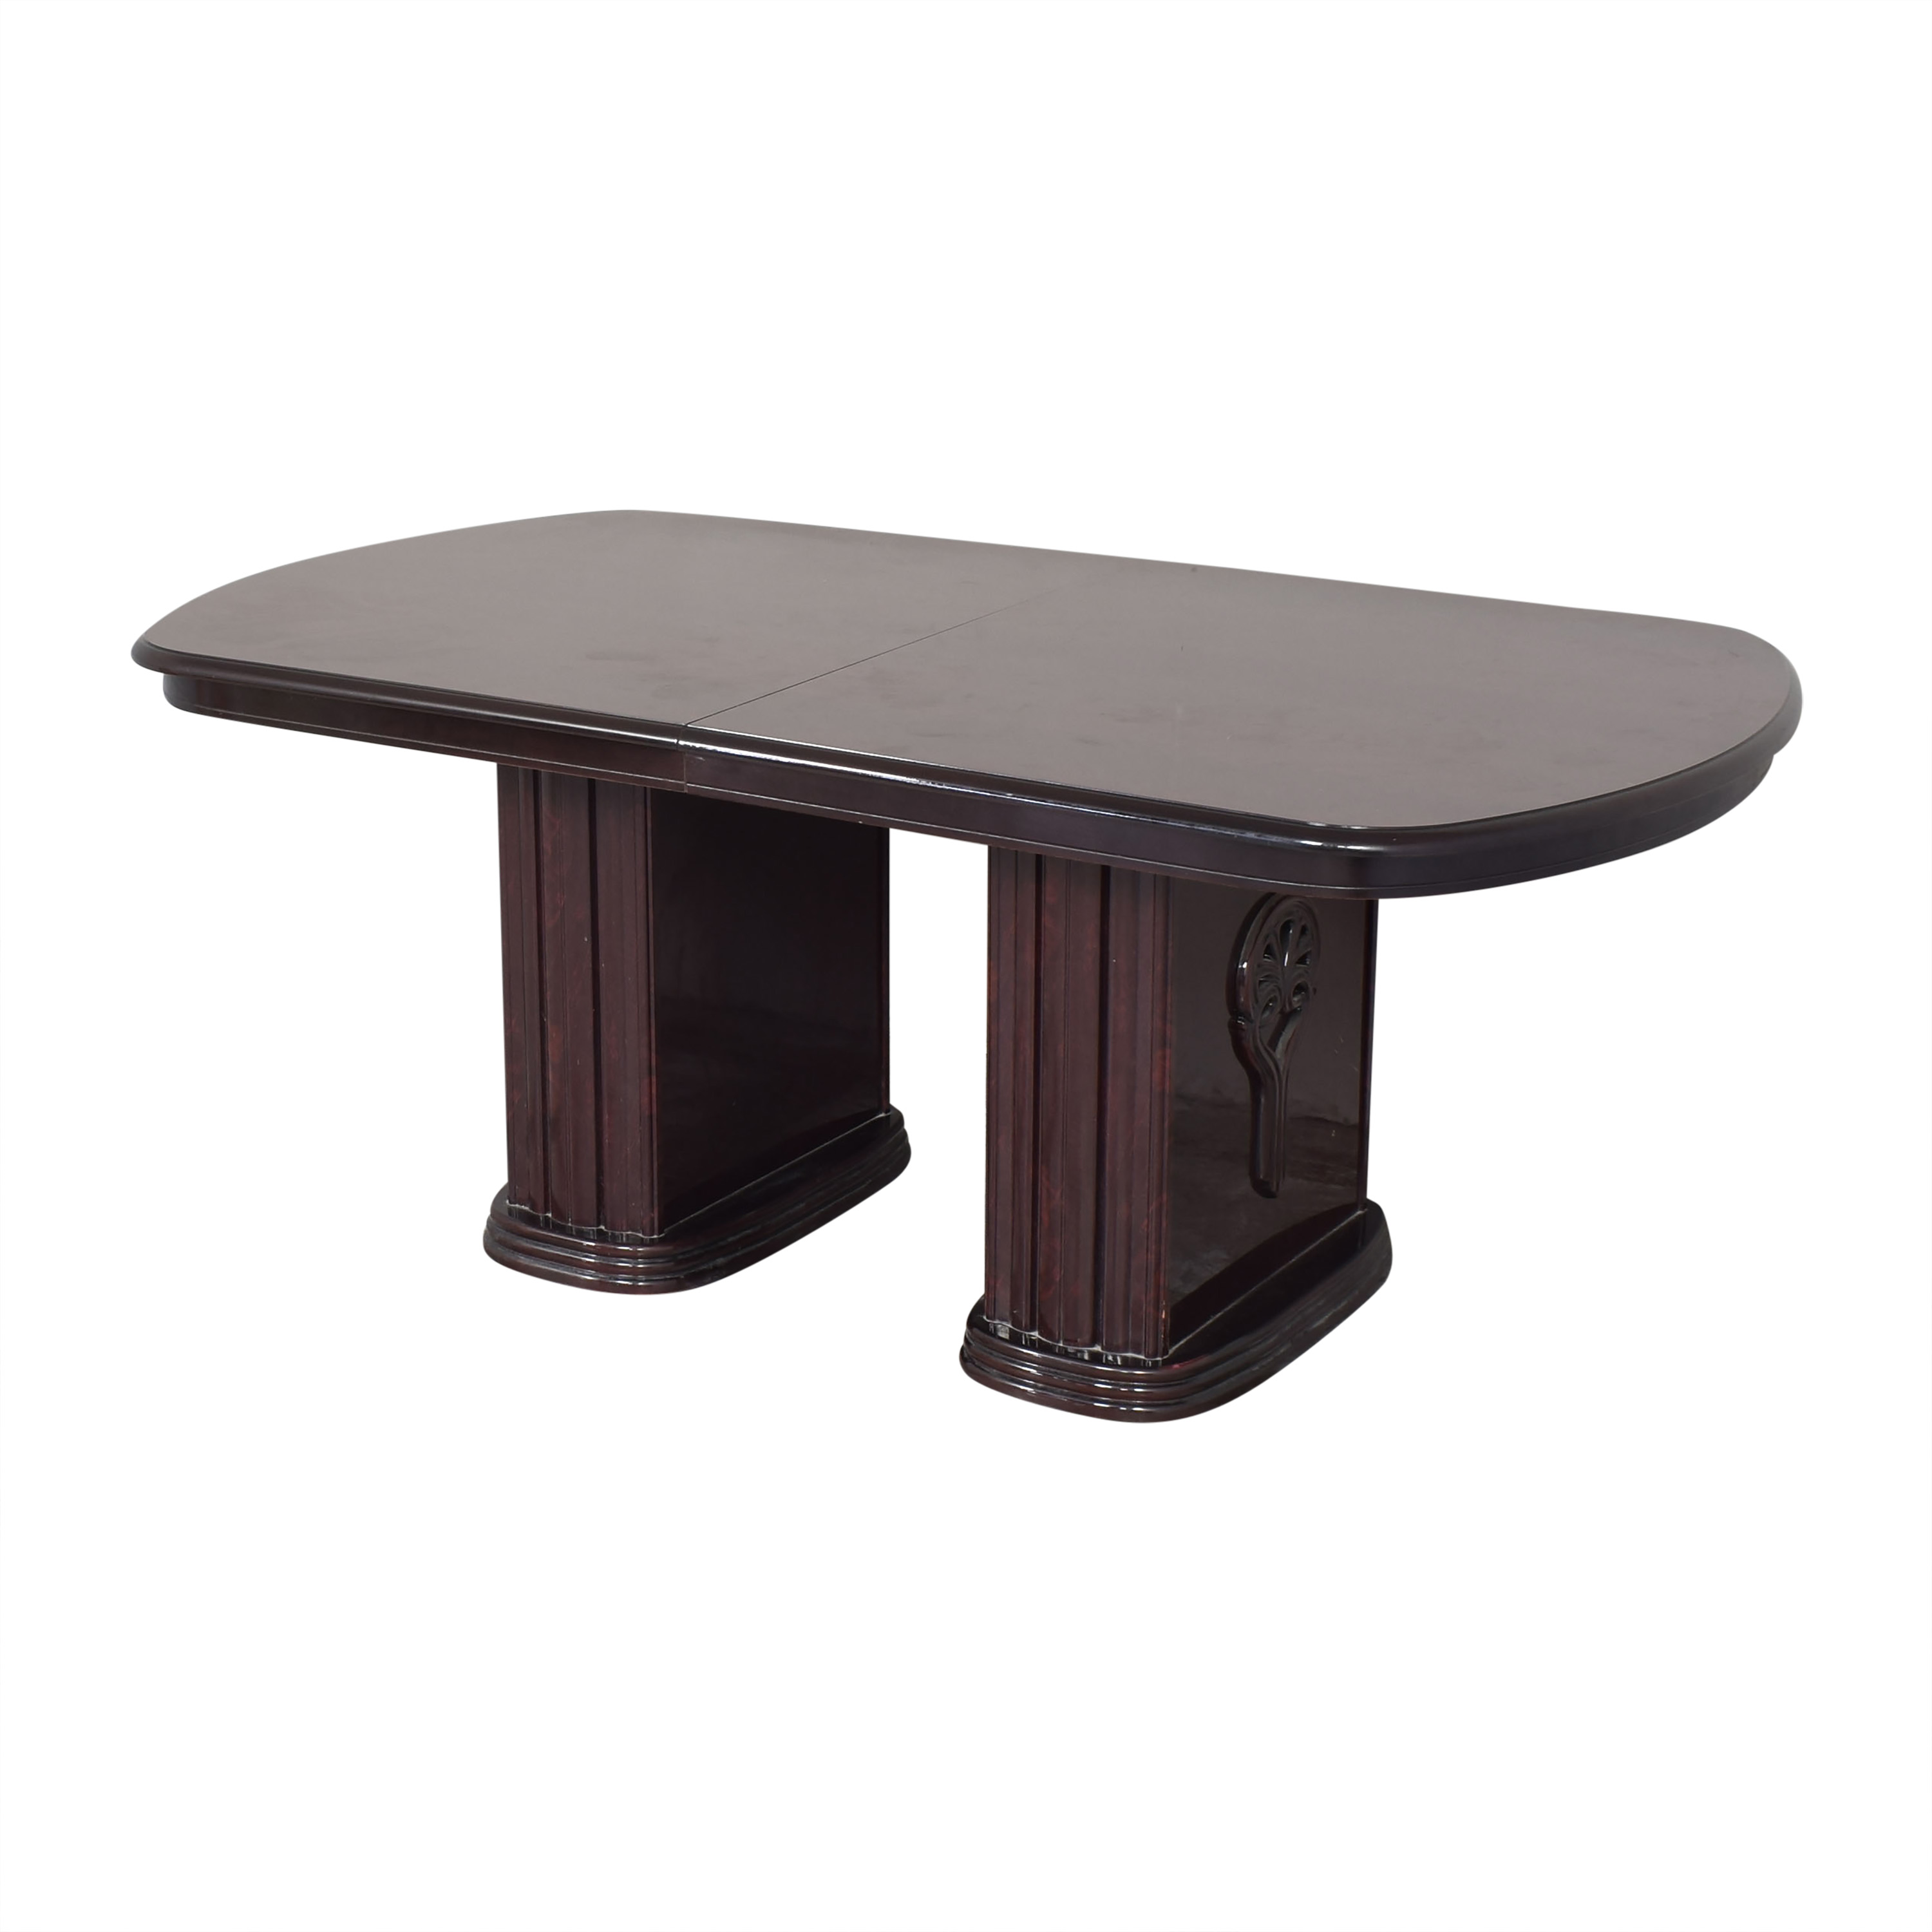 Double Column Base Dining Table coupon